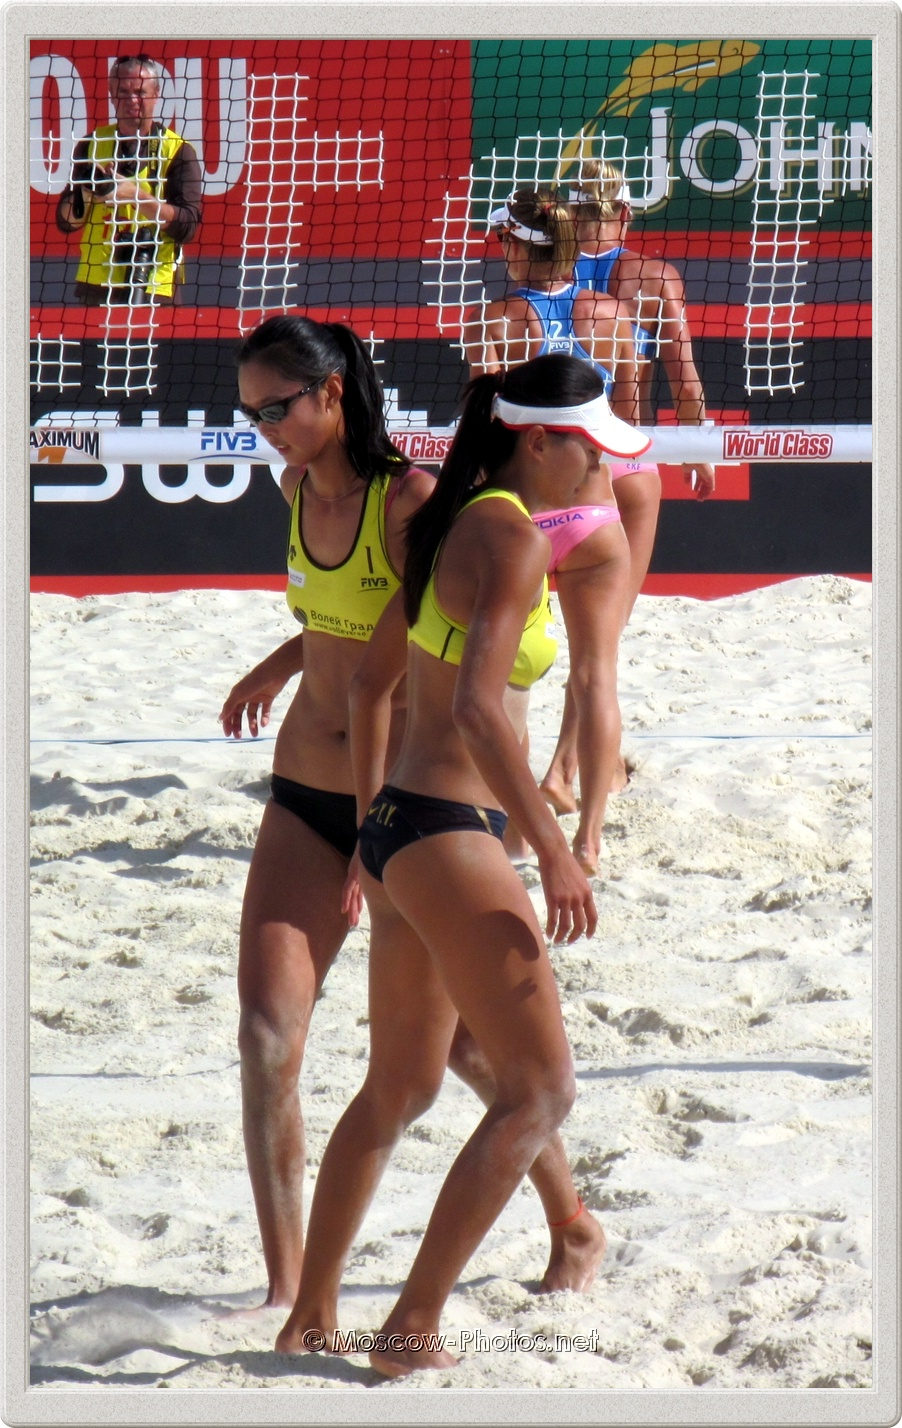 Chinese Volleyball Players and Hot Moscow Summer